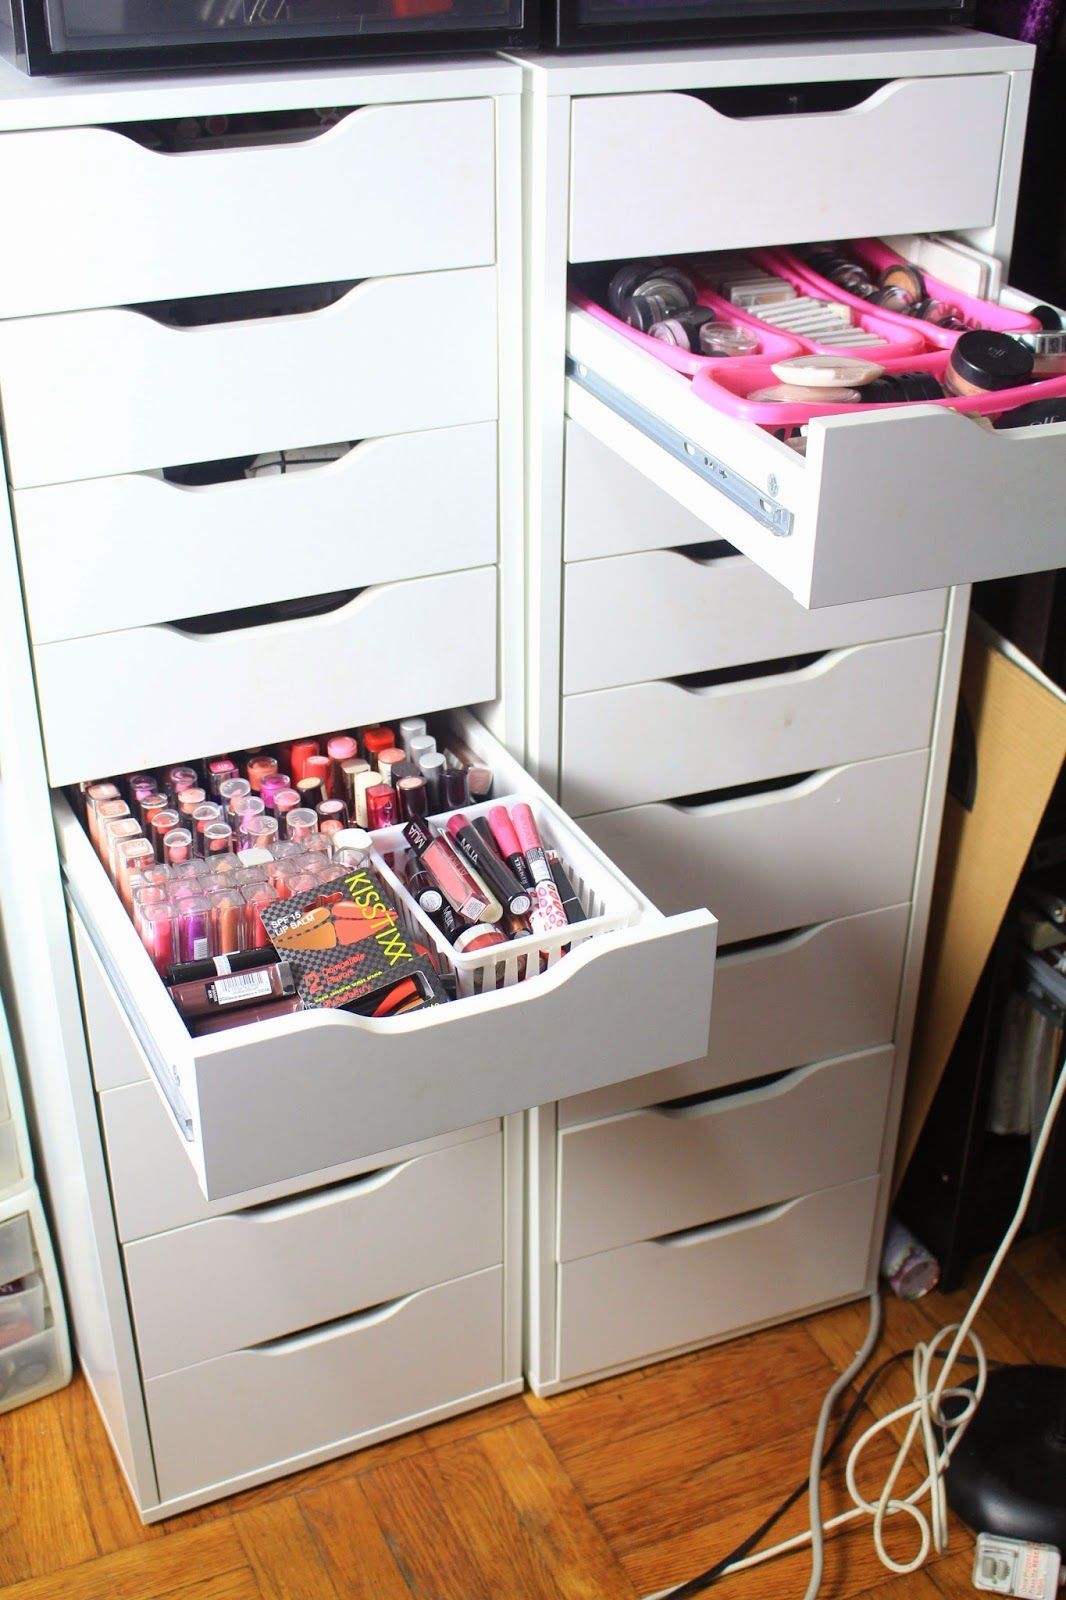 diva makeup queen diy ikea alex drawers for makeup collection storage get organized ikea. Black Bedroom Furniture Sets. Home Design Ideas